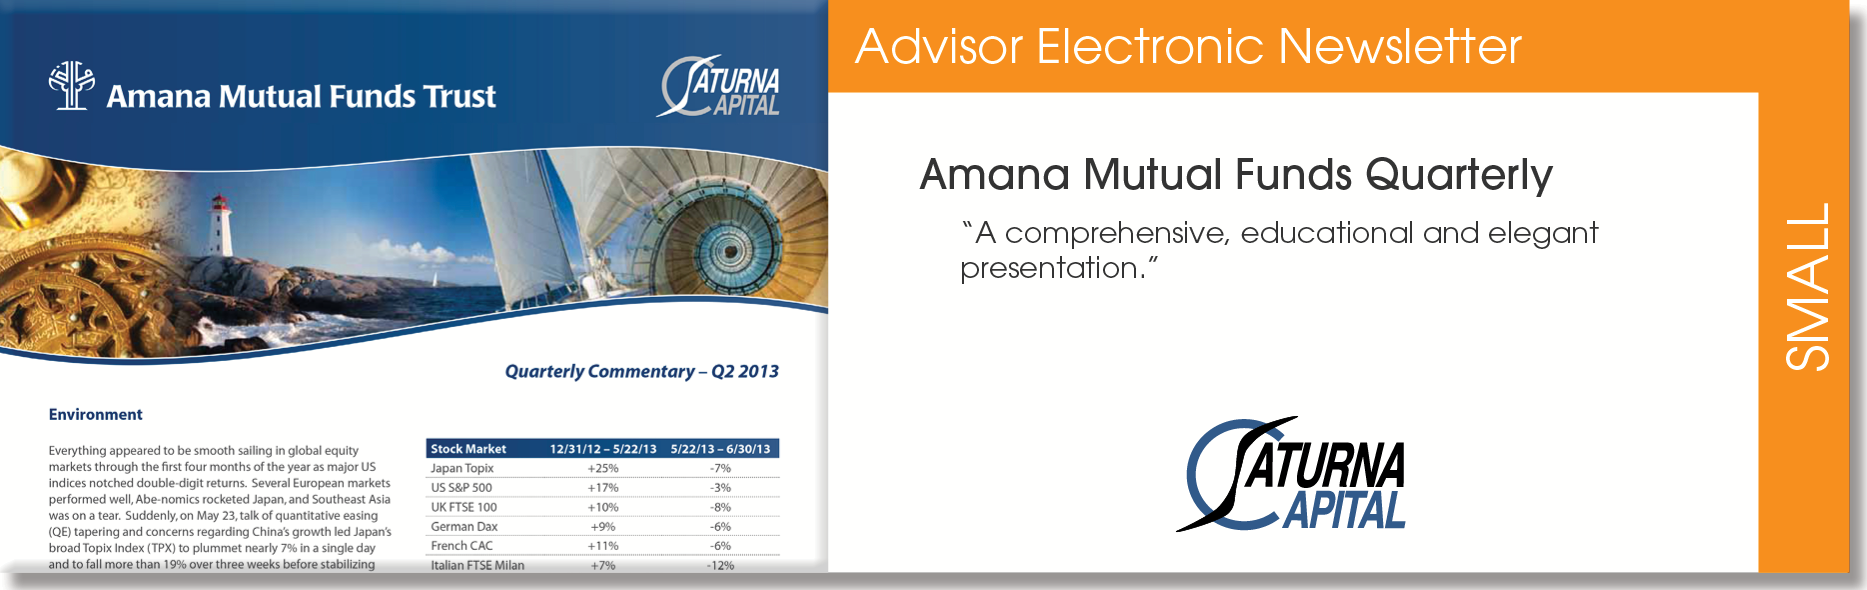 Small Advisor Winner Image7